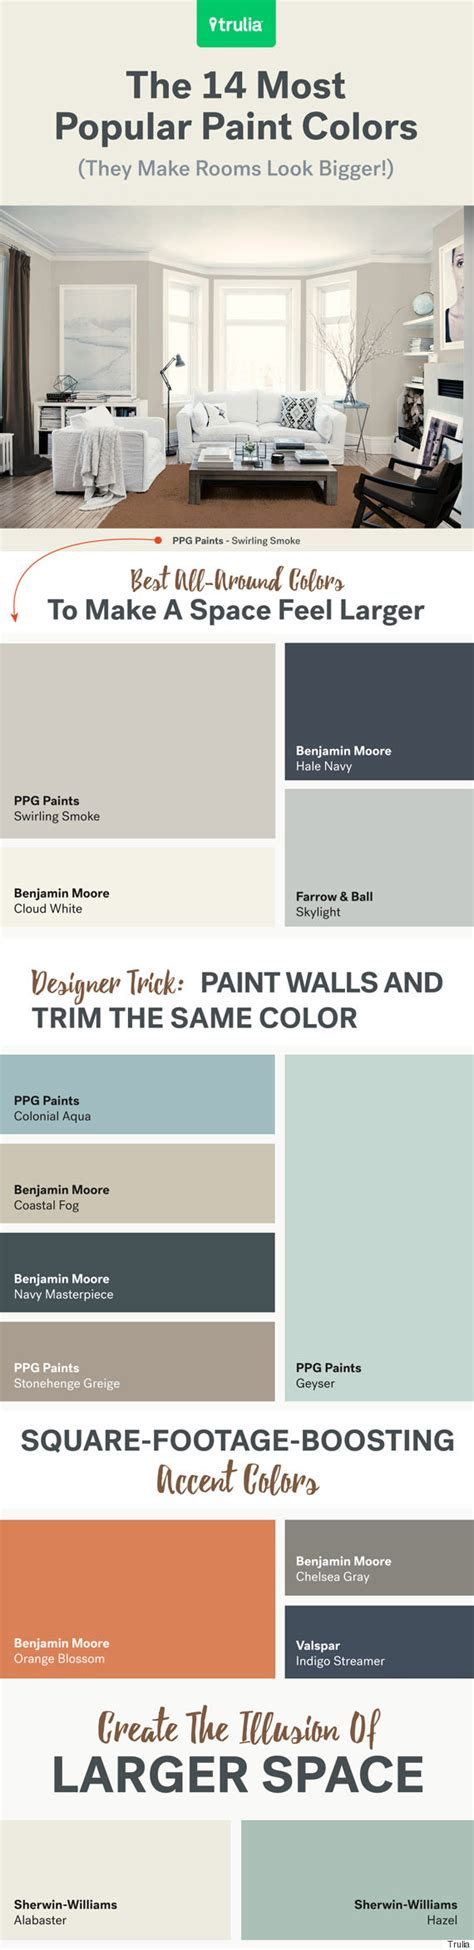 paint colors that make a room look bigger the 14 most popular paint colors they make a room look